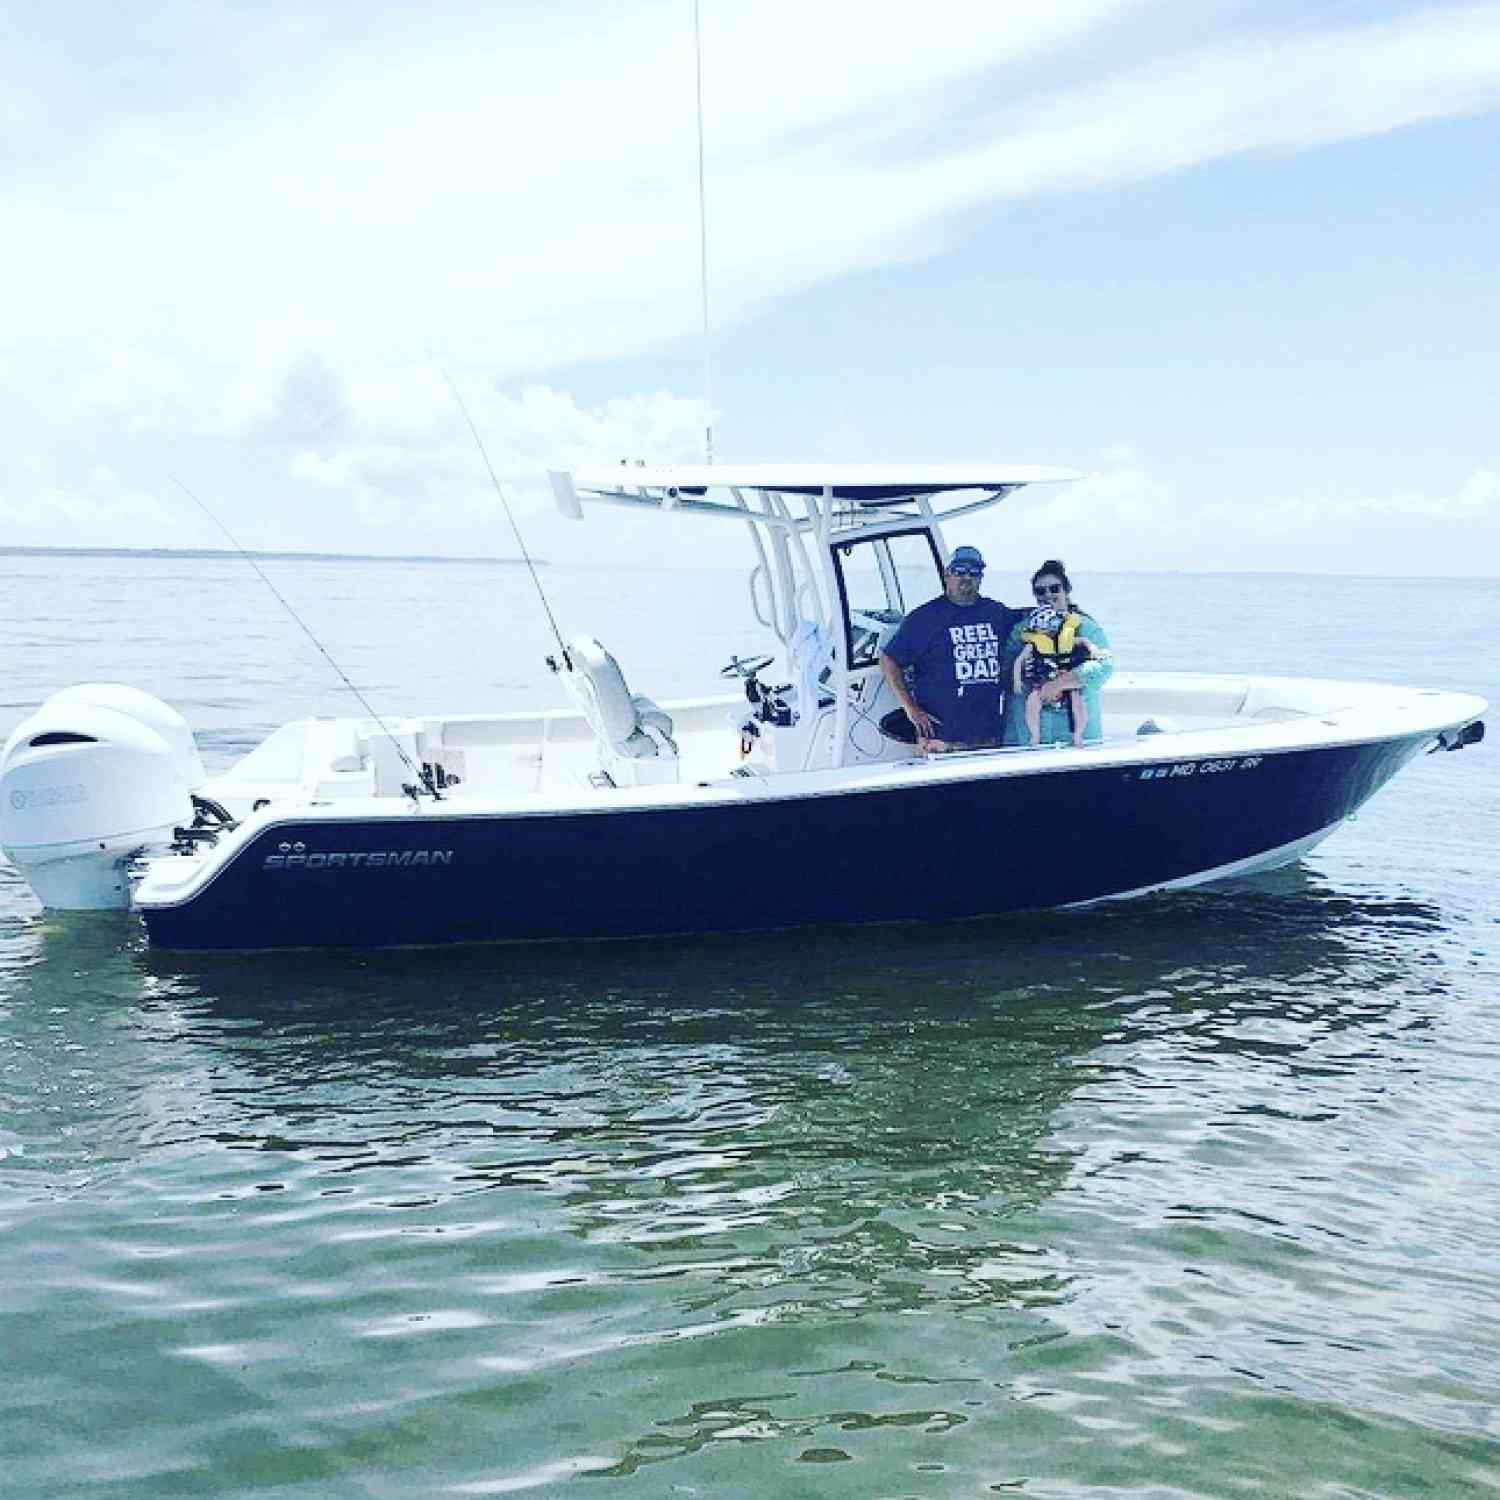 Title: The Sanders go boating! - On board their Sportsman Open 252 Center Console - Location: Maryland. Participating in the Photo Contest #SportsmanJuly2020